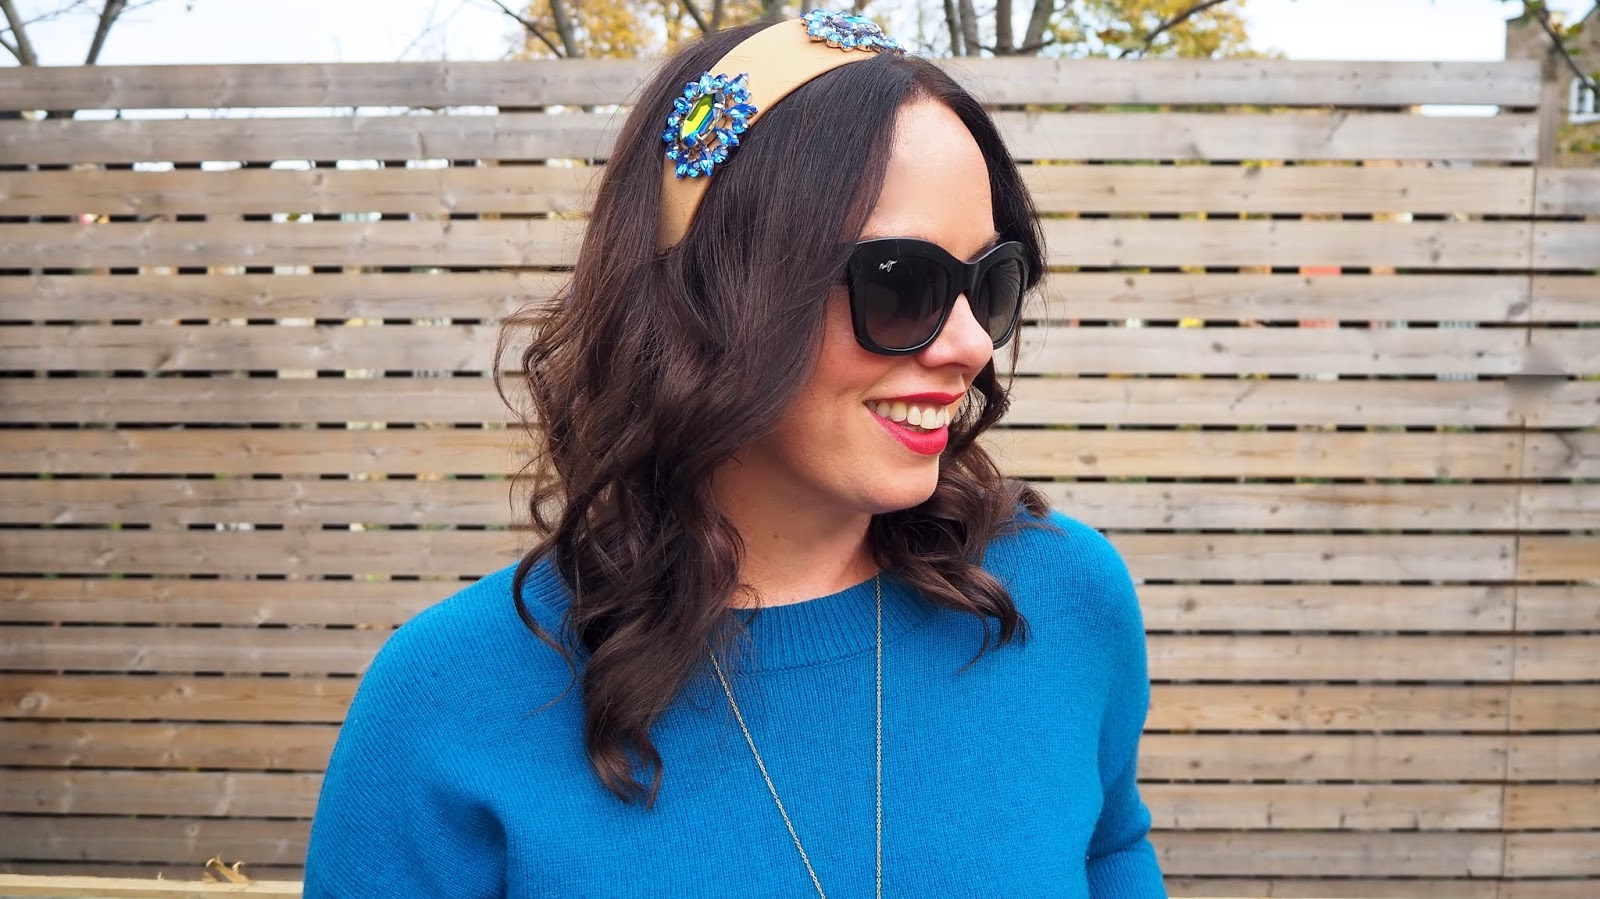 Asos tan headband with blue and green jewels on it